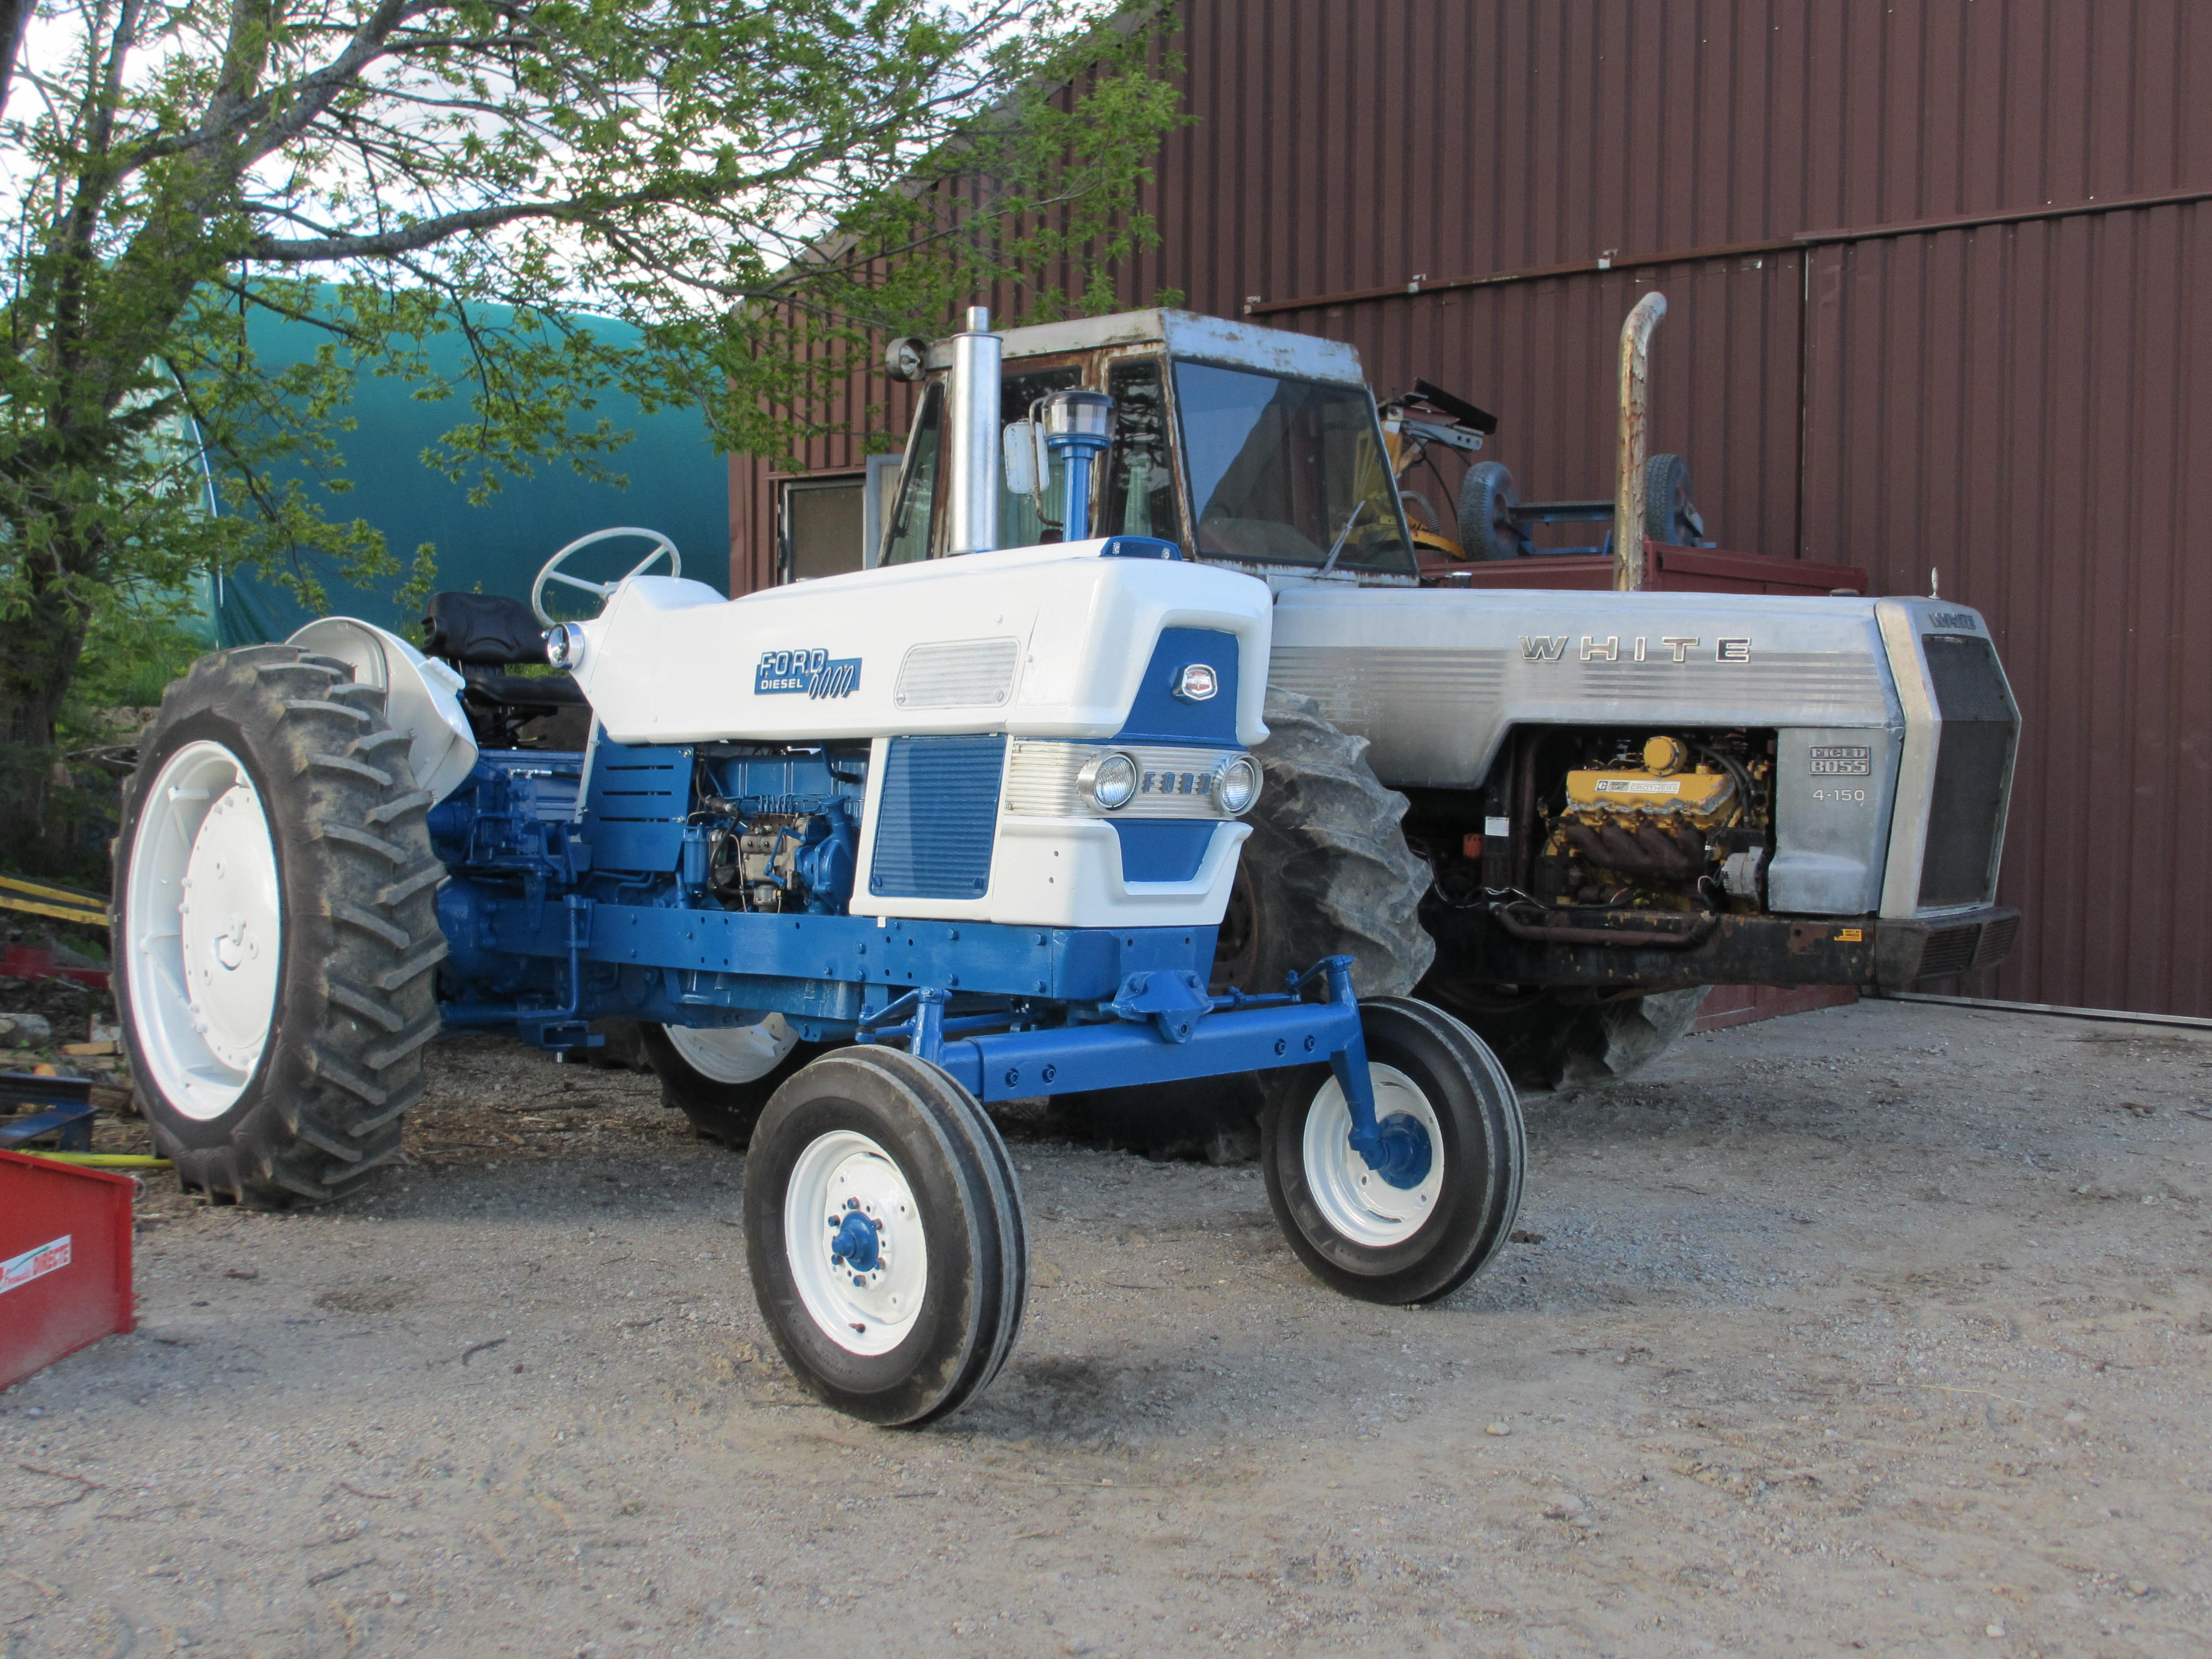 Ford 6000 Diesel Tractor : Tractor story farmall to ford antique